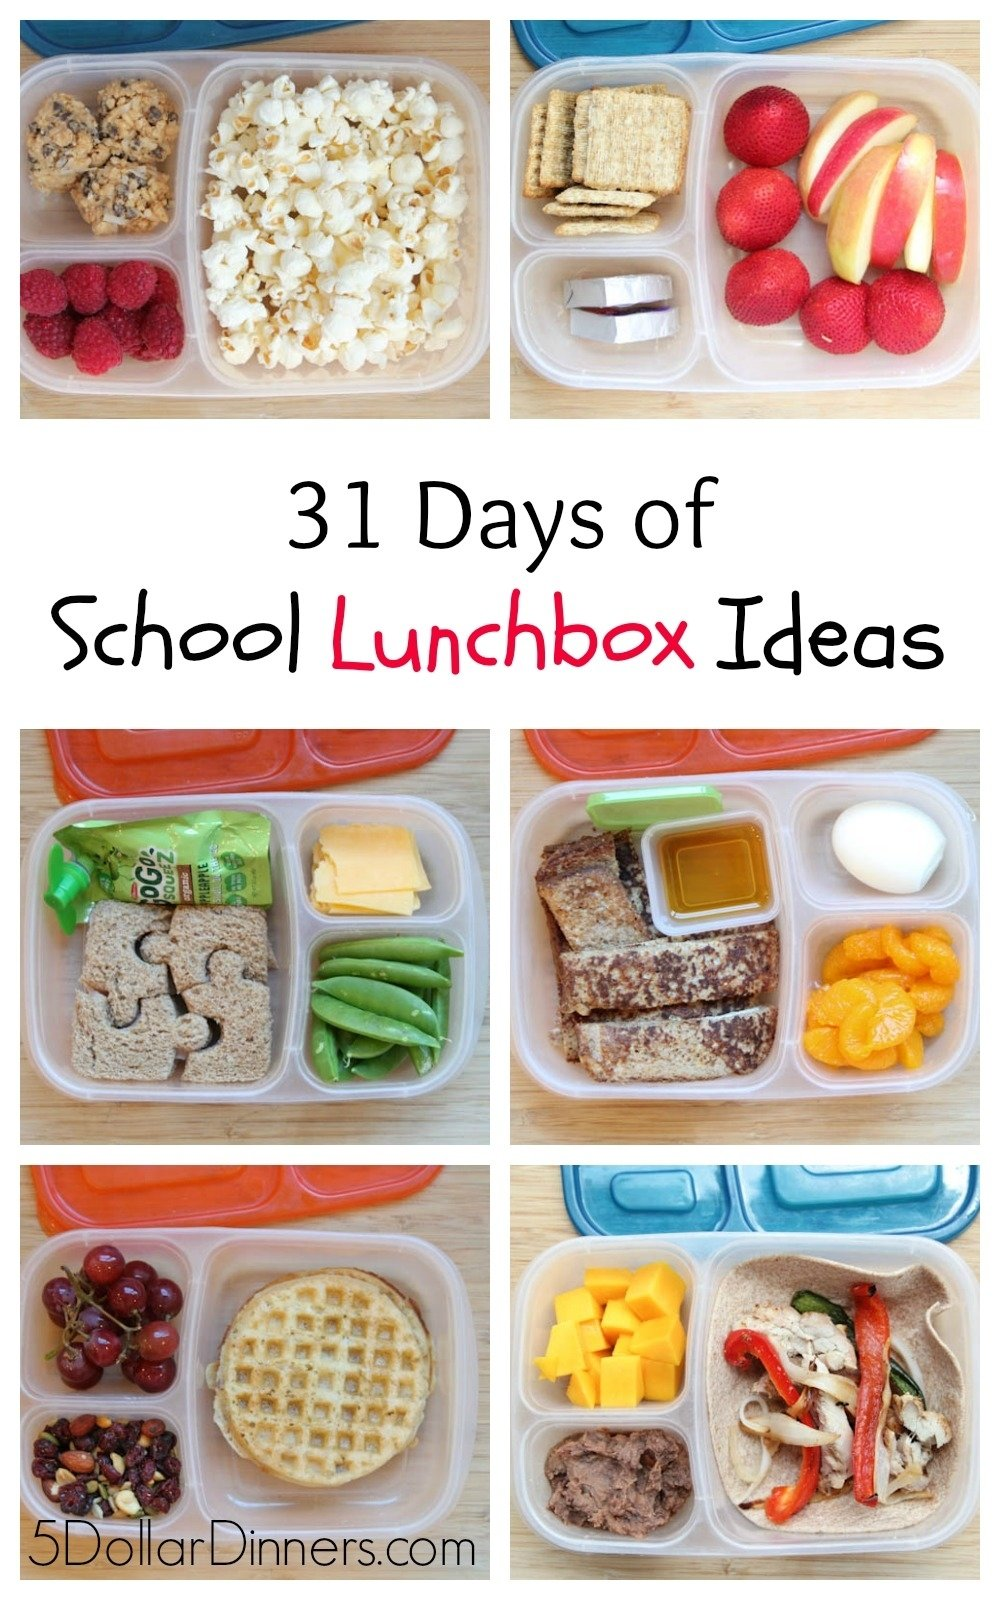 10 Nice Ideas For Kids Lunches For School 31 days of school lunchbox ideas sq 2020